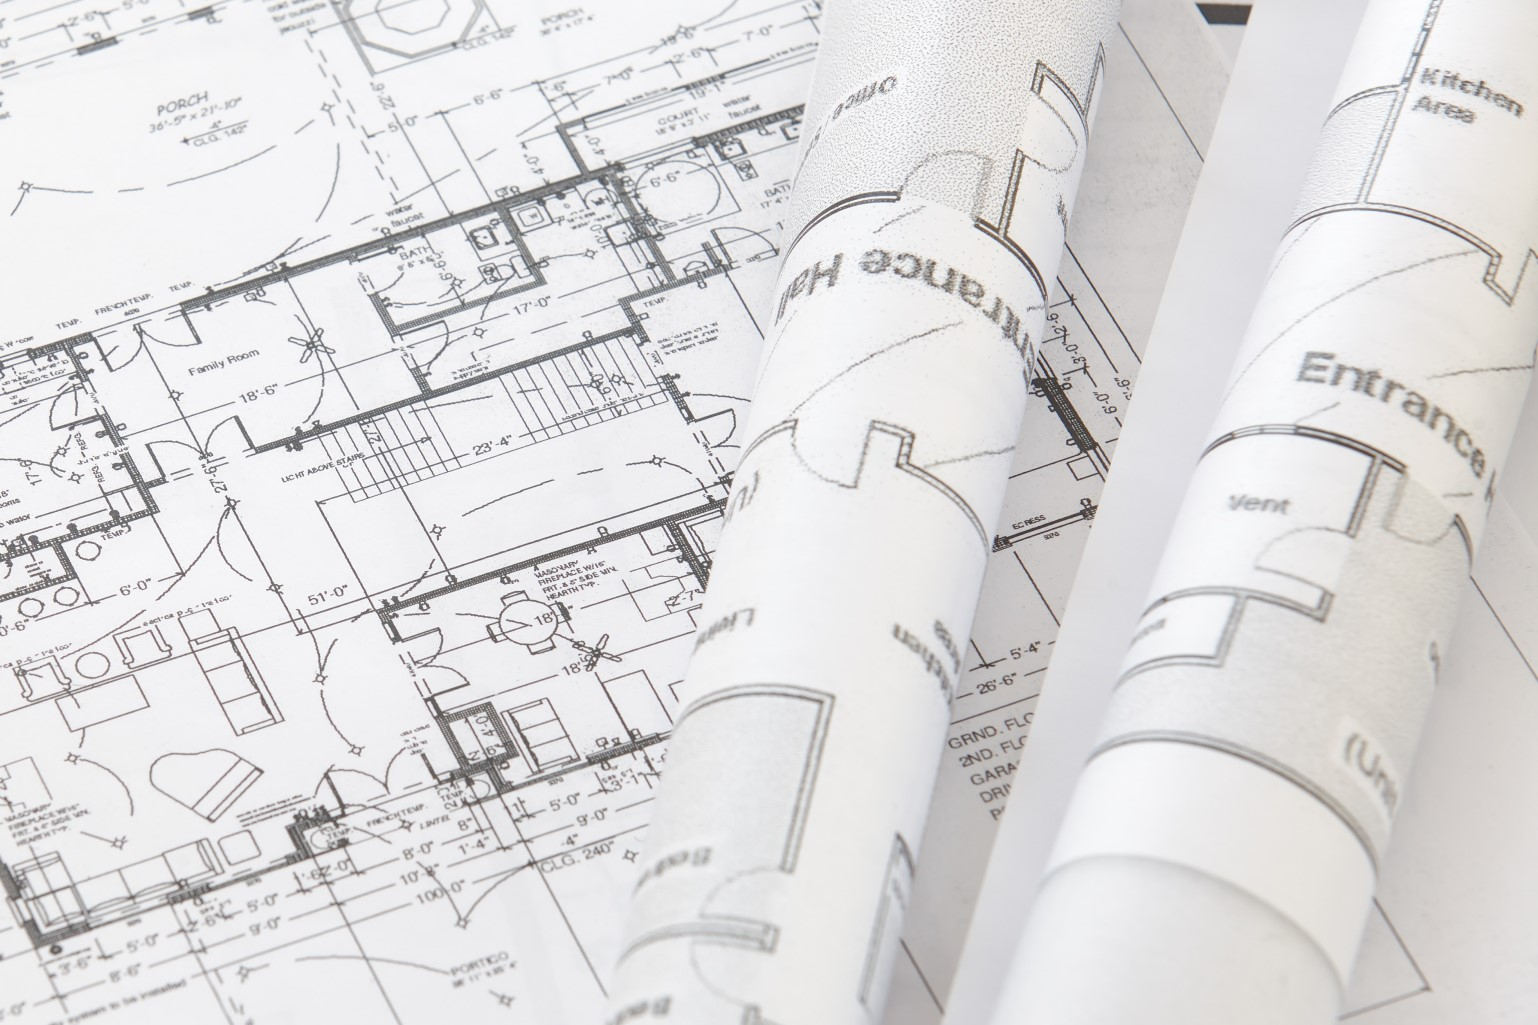 architectural design and plans.